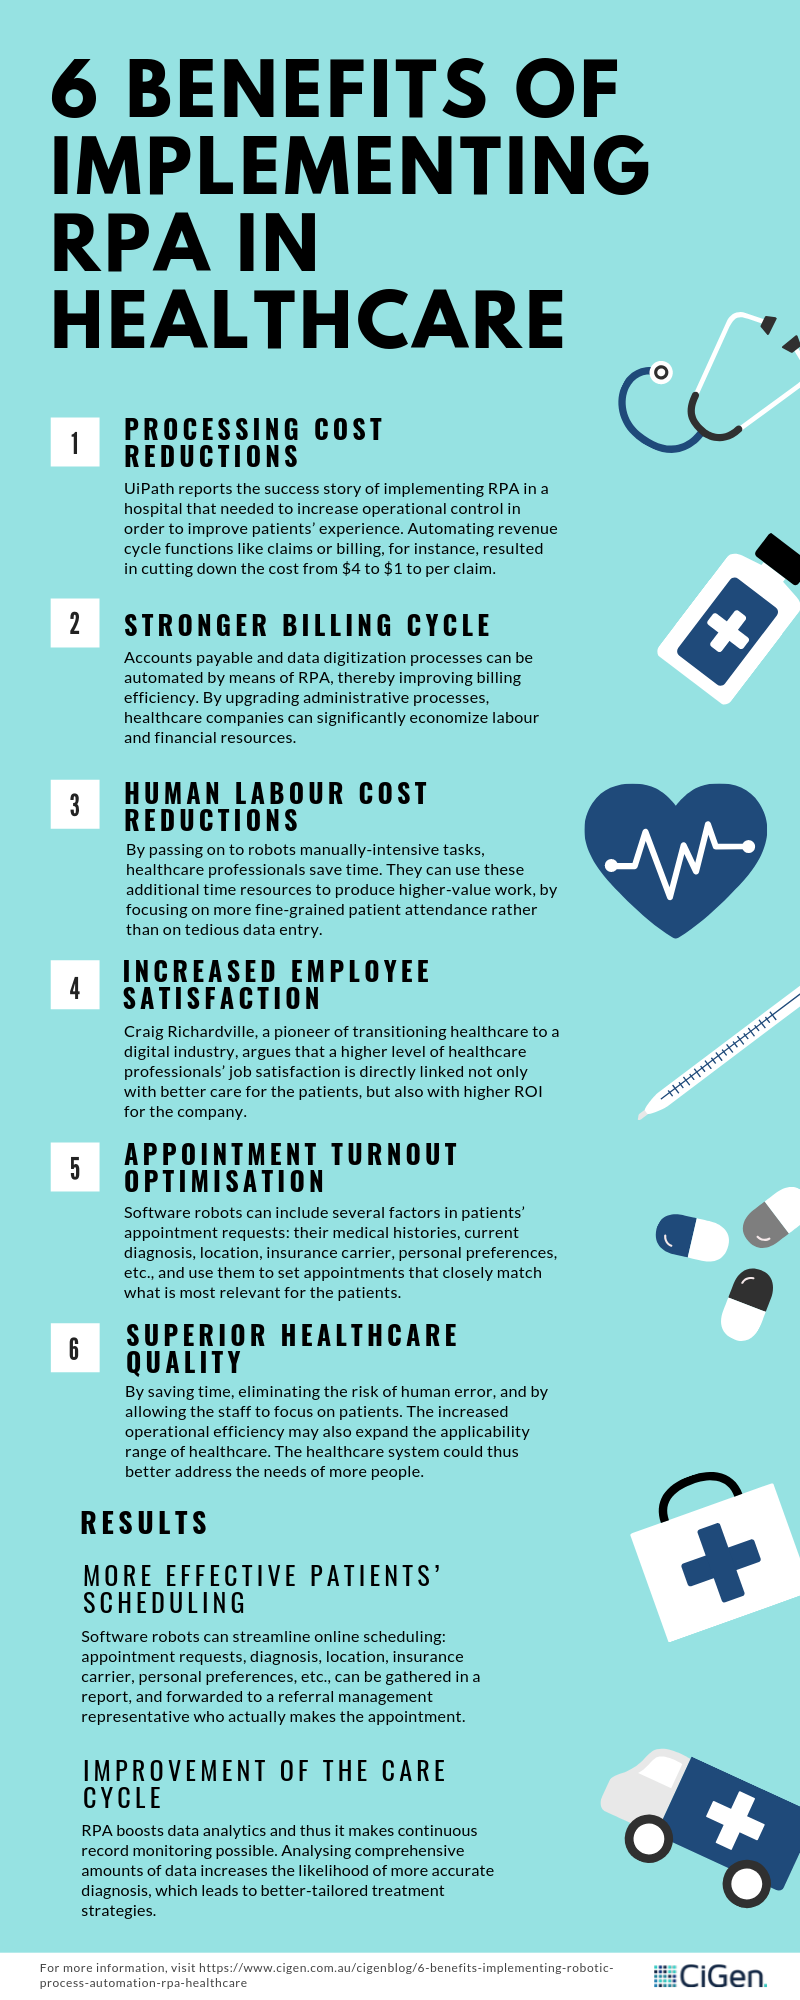 Robotic Process Automation: The future of healthcare revenue cycle management